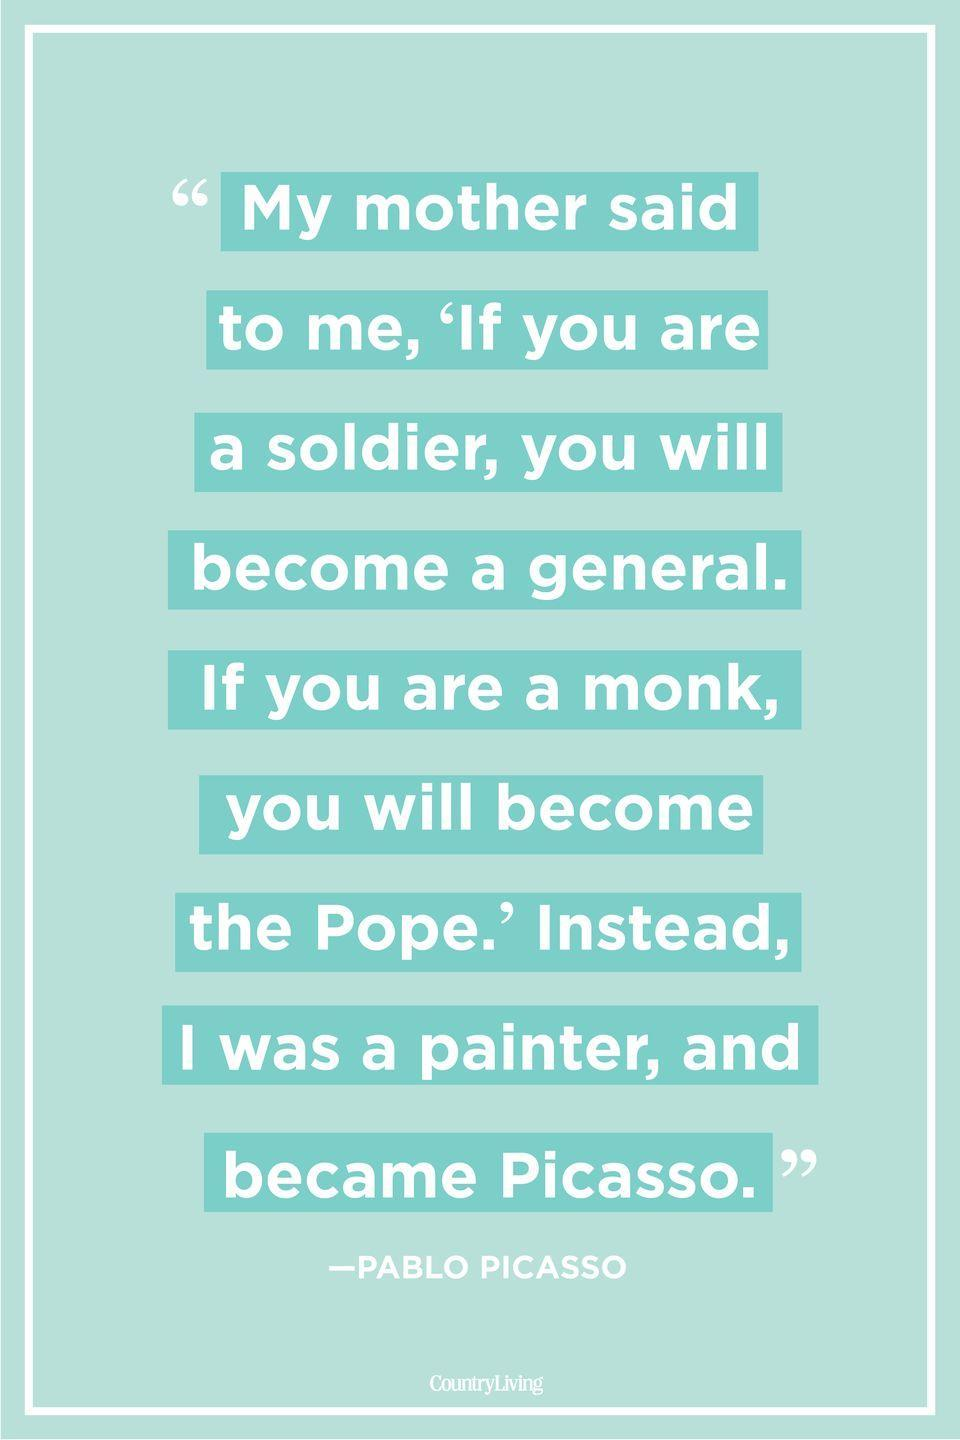 "<p>""My mother said to me, 'If you are a soldier, you will become a general. If you are a monk, you will become the Pope.' Instead, I was a painter, and became Picasso."" </p>"